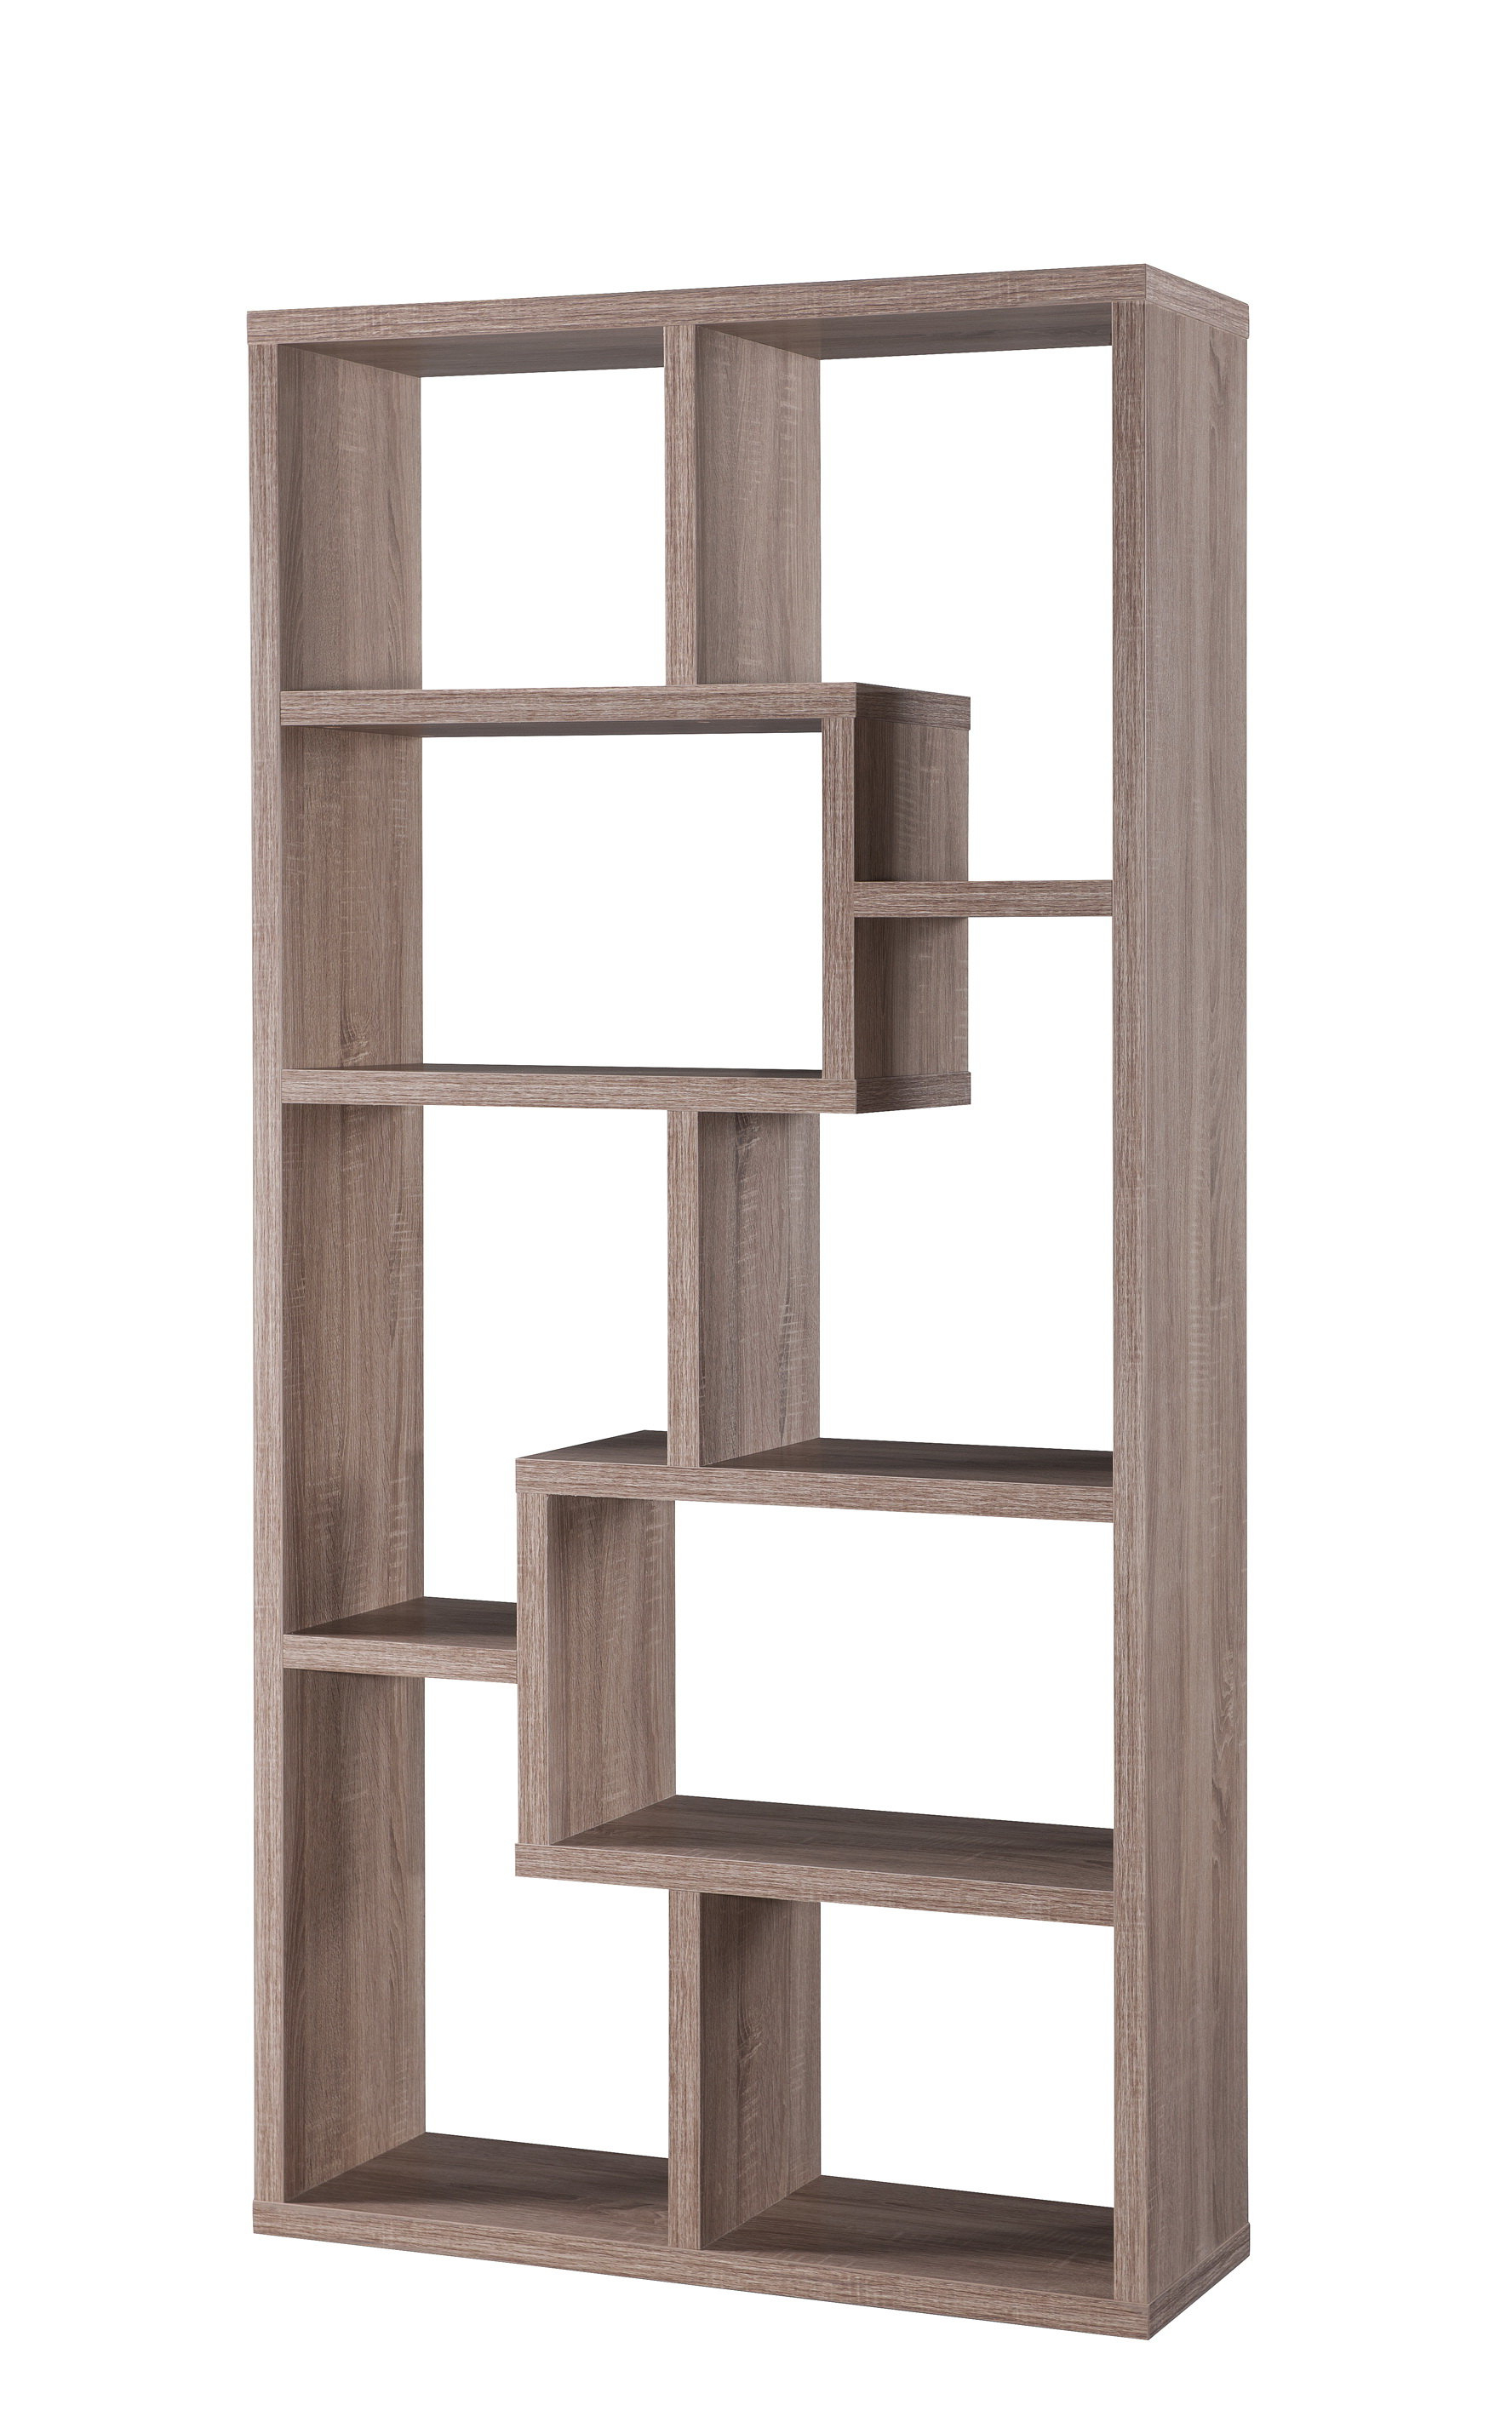 Newest Standard Bookcase & Reviews (Gallery 20 of 20)